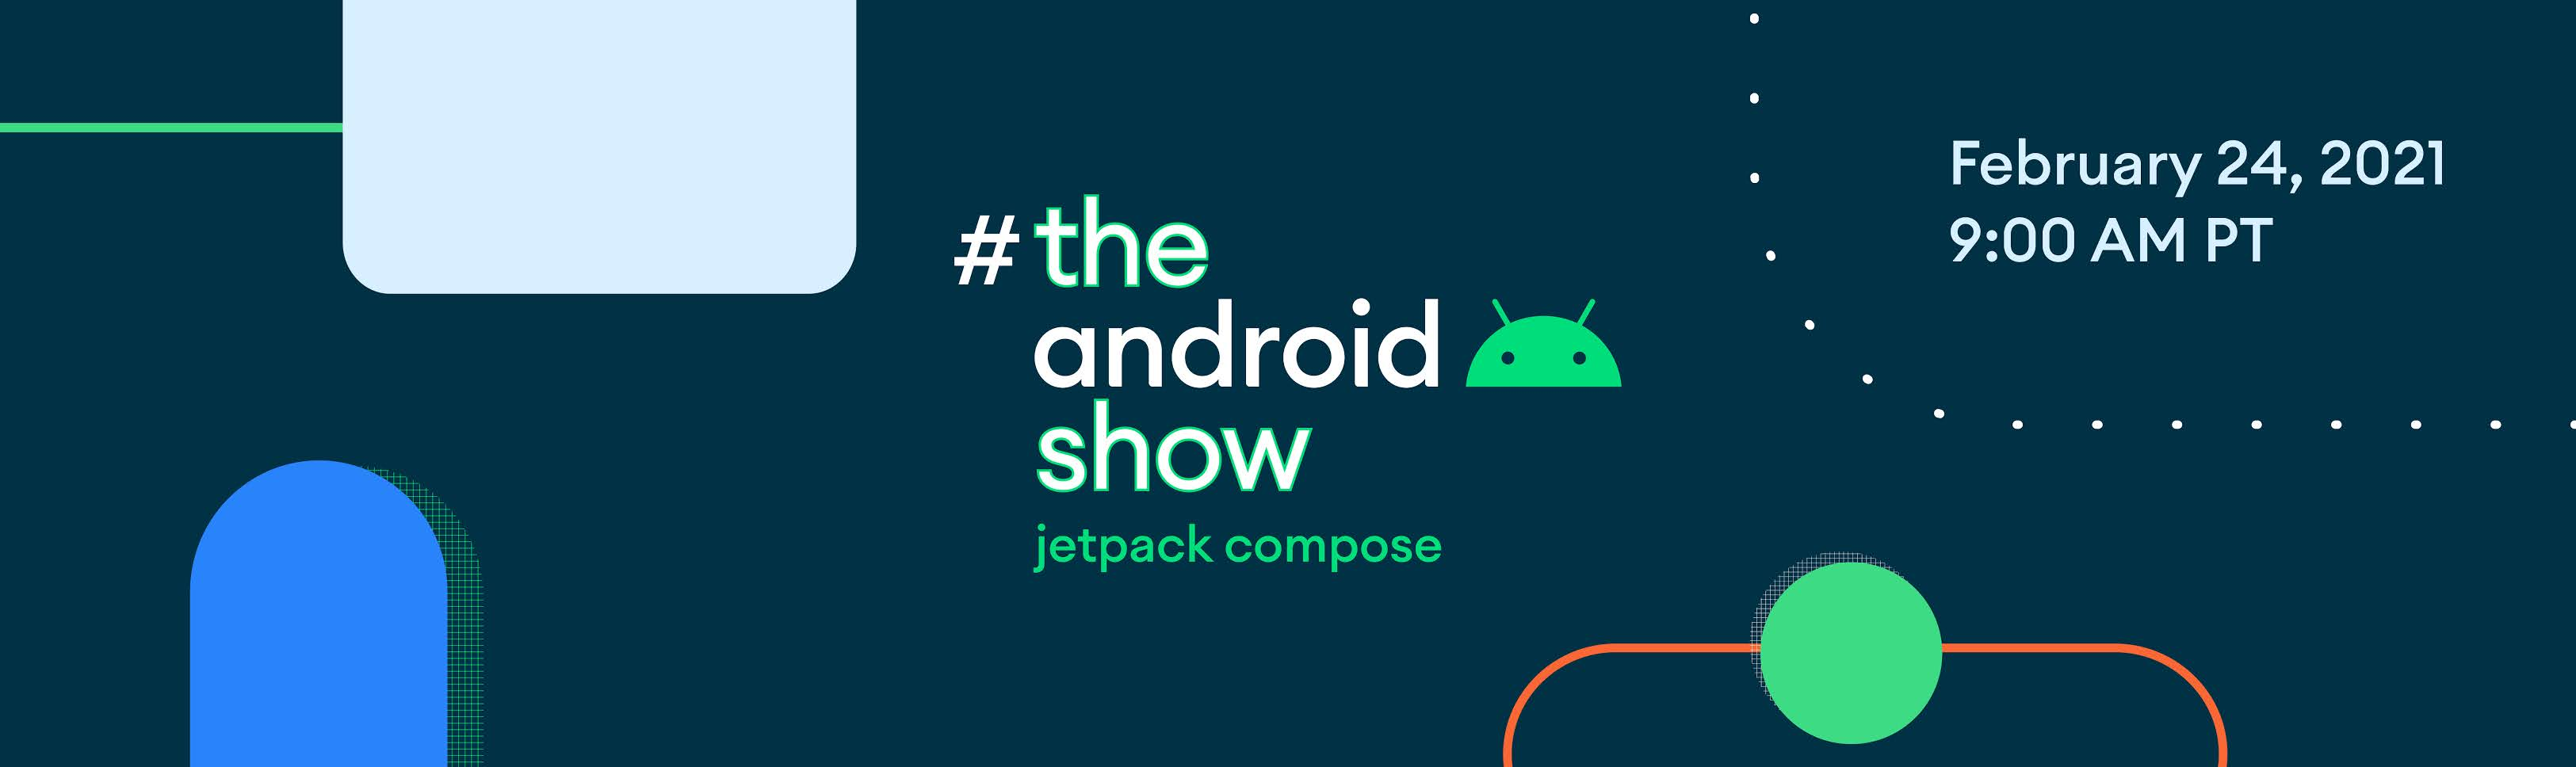 The Android Show: Jetpack Compose, Feb. 24 at 9am PT